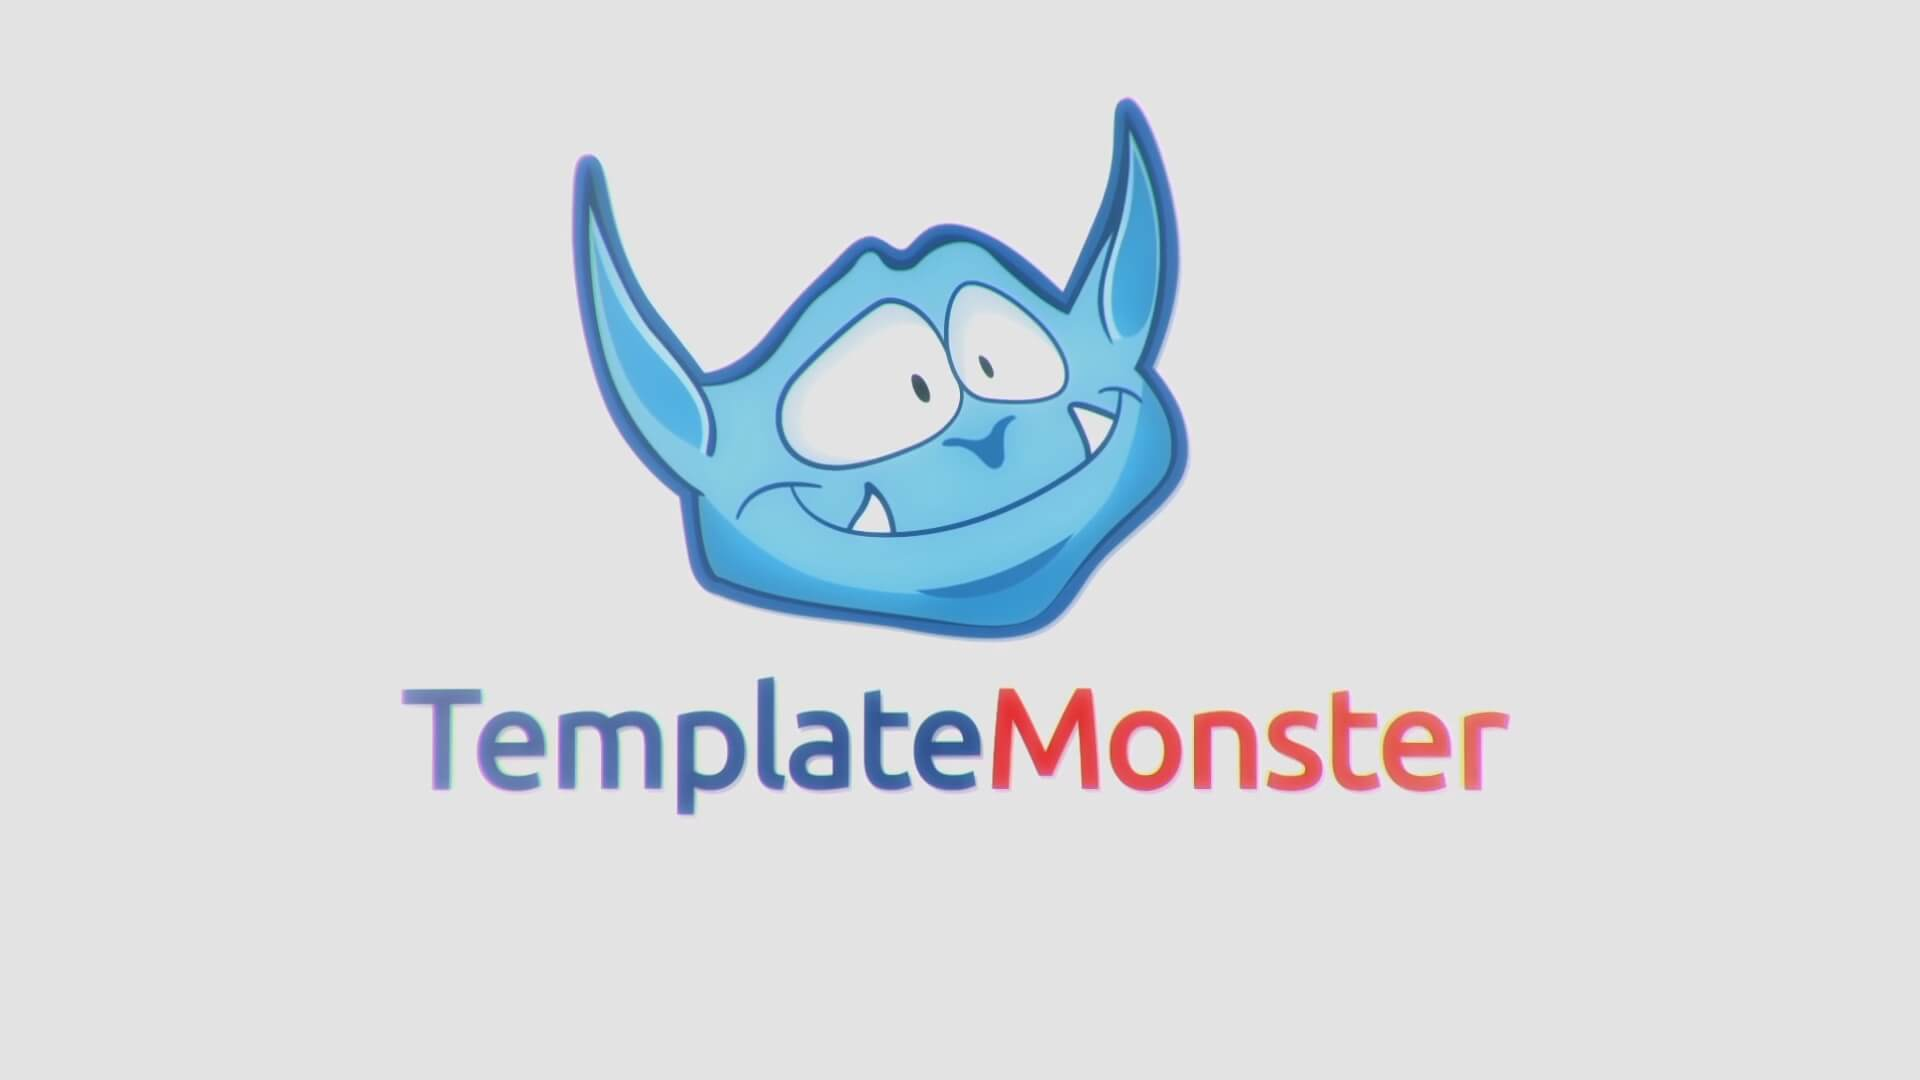 Who is TemplateMonster